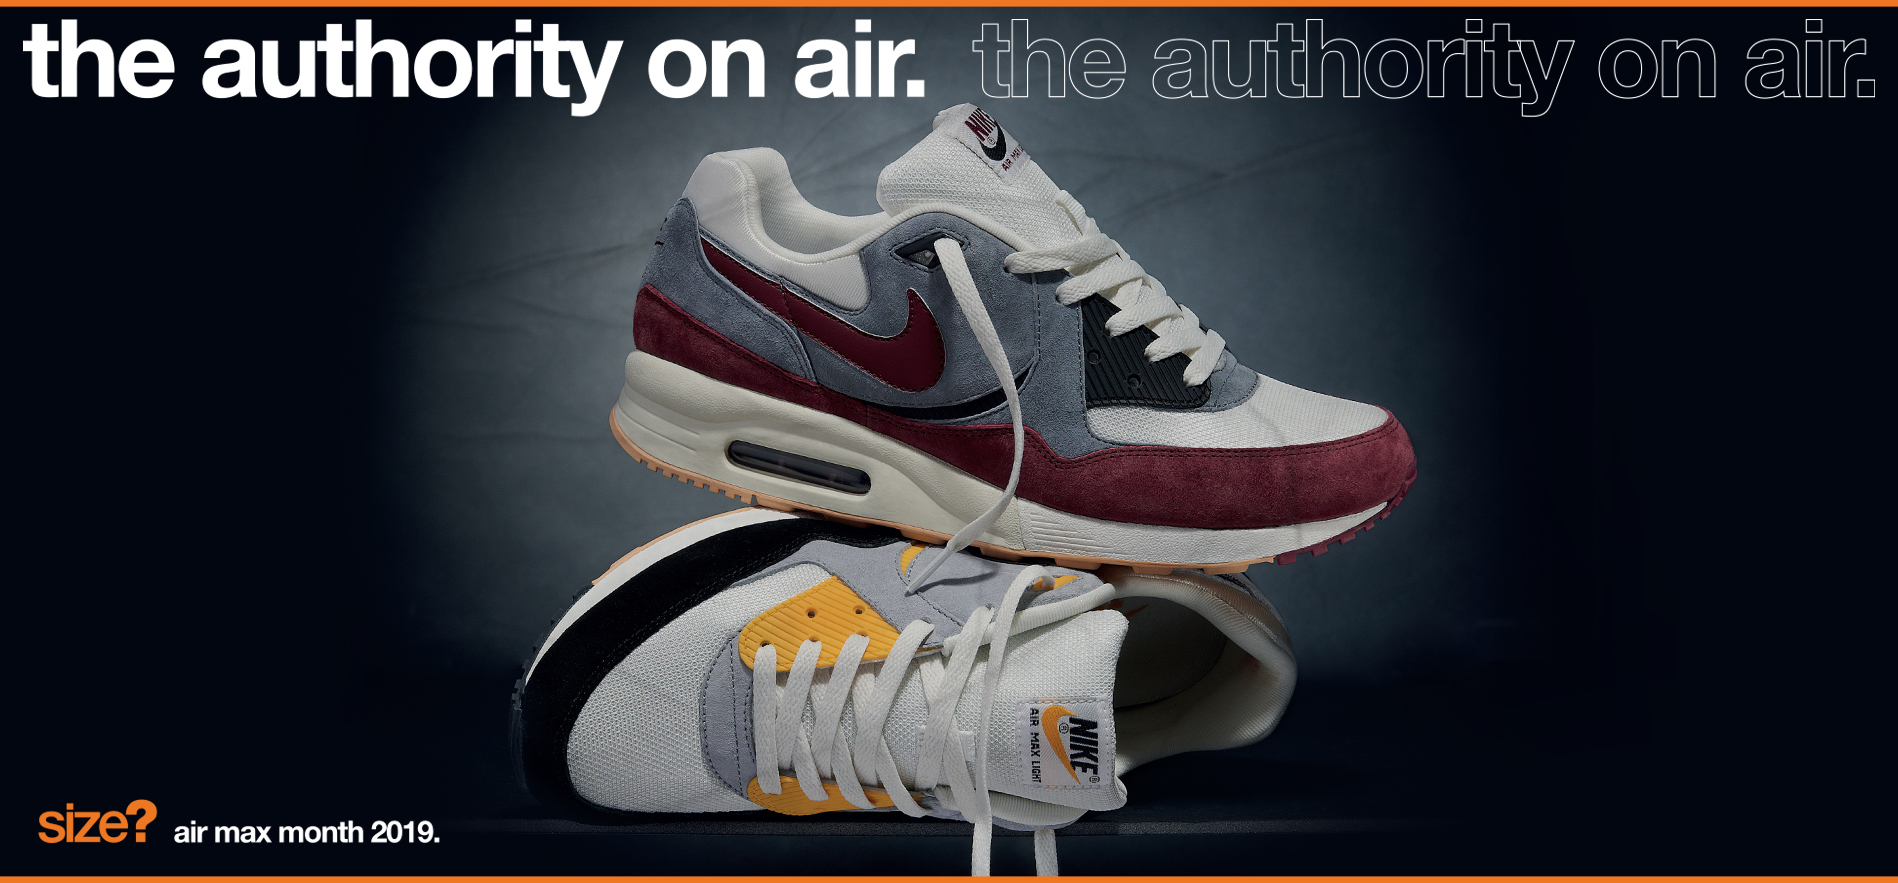 Air Max Light 'Worldwide Exclusive'